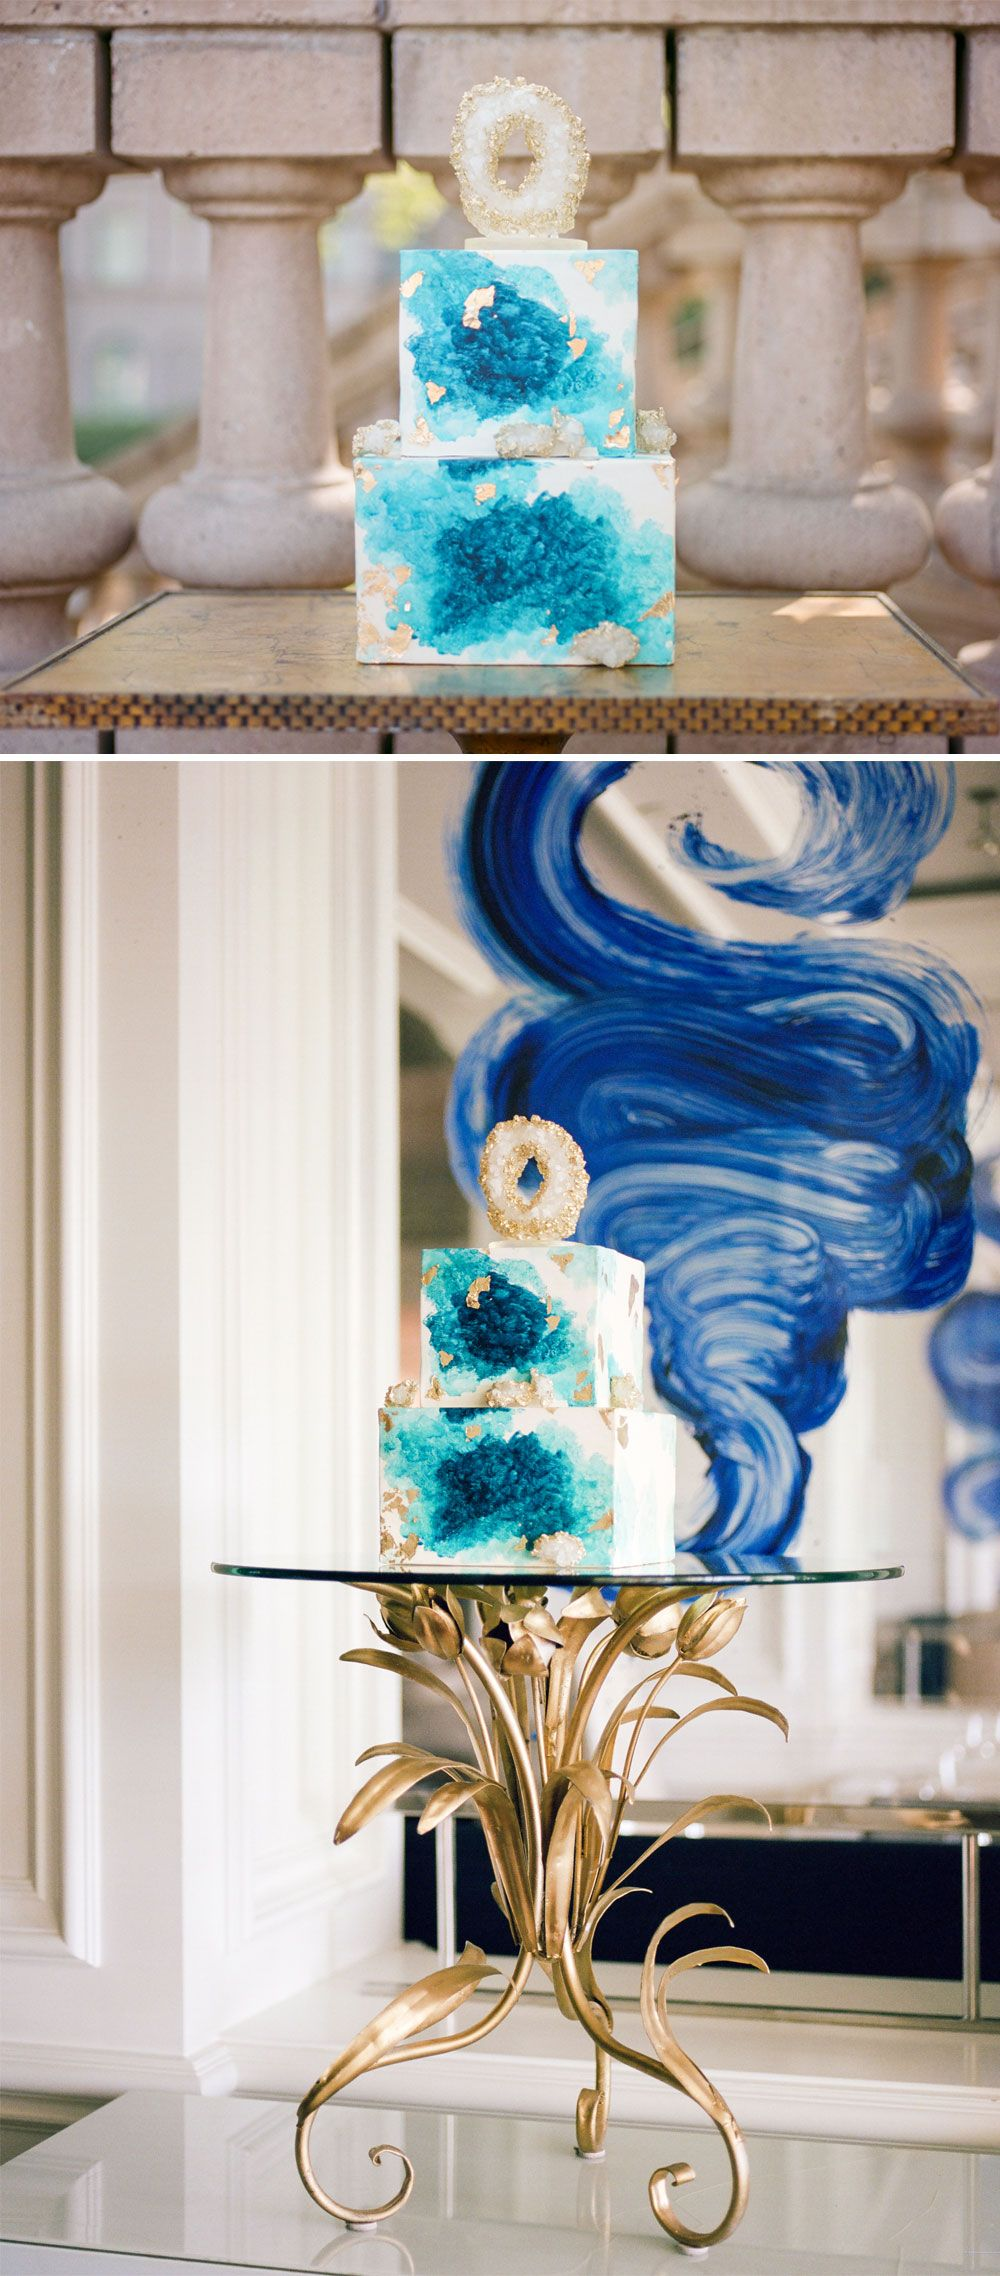 9 unbelievable geode wedding cakes that will amaze you